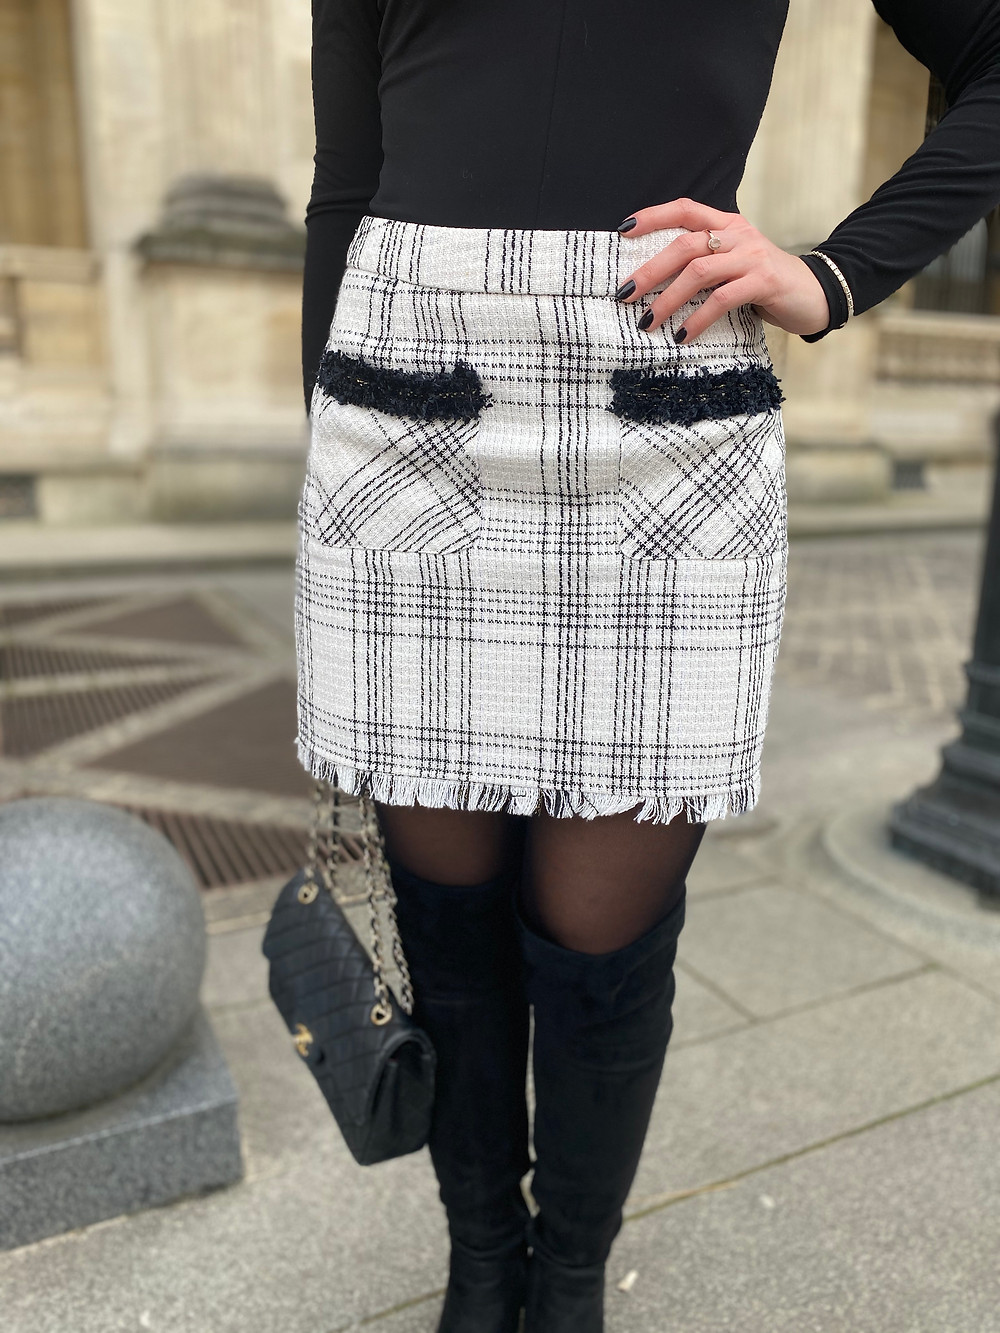 simply chic by Anna blog